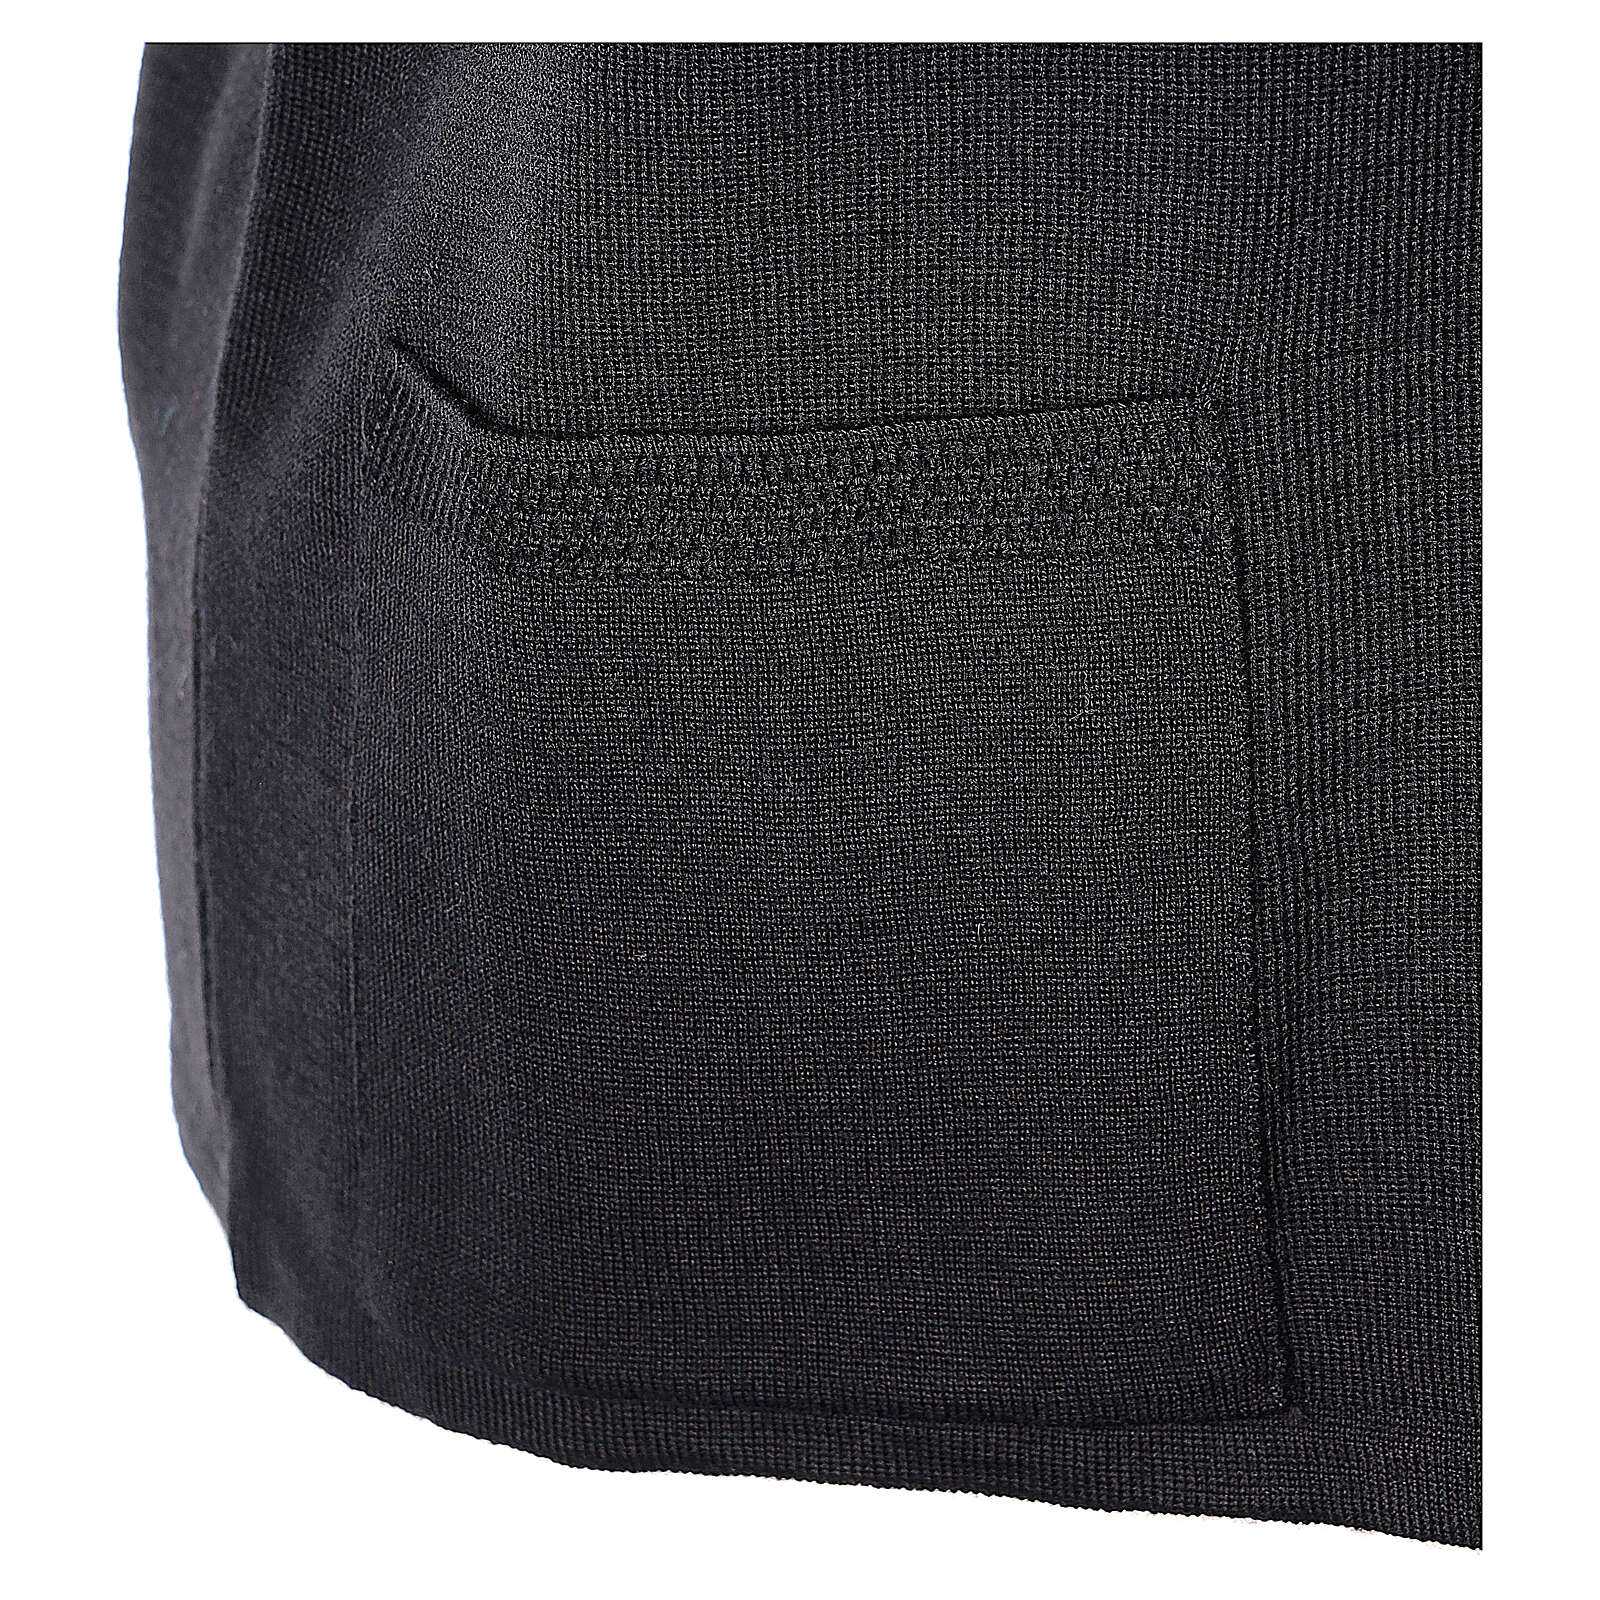 Nun black sleeveless cardigan with V-neck and pockets PLUS SIZES 50% merino wool 50% acrylic In Primis 4